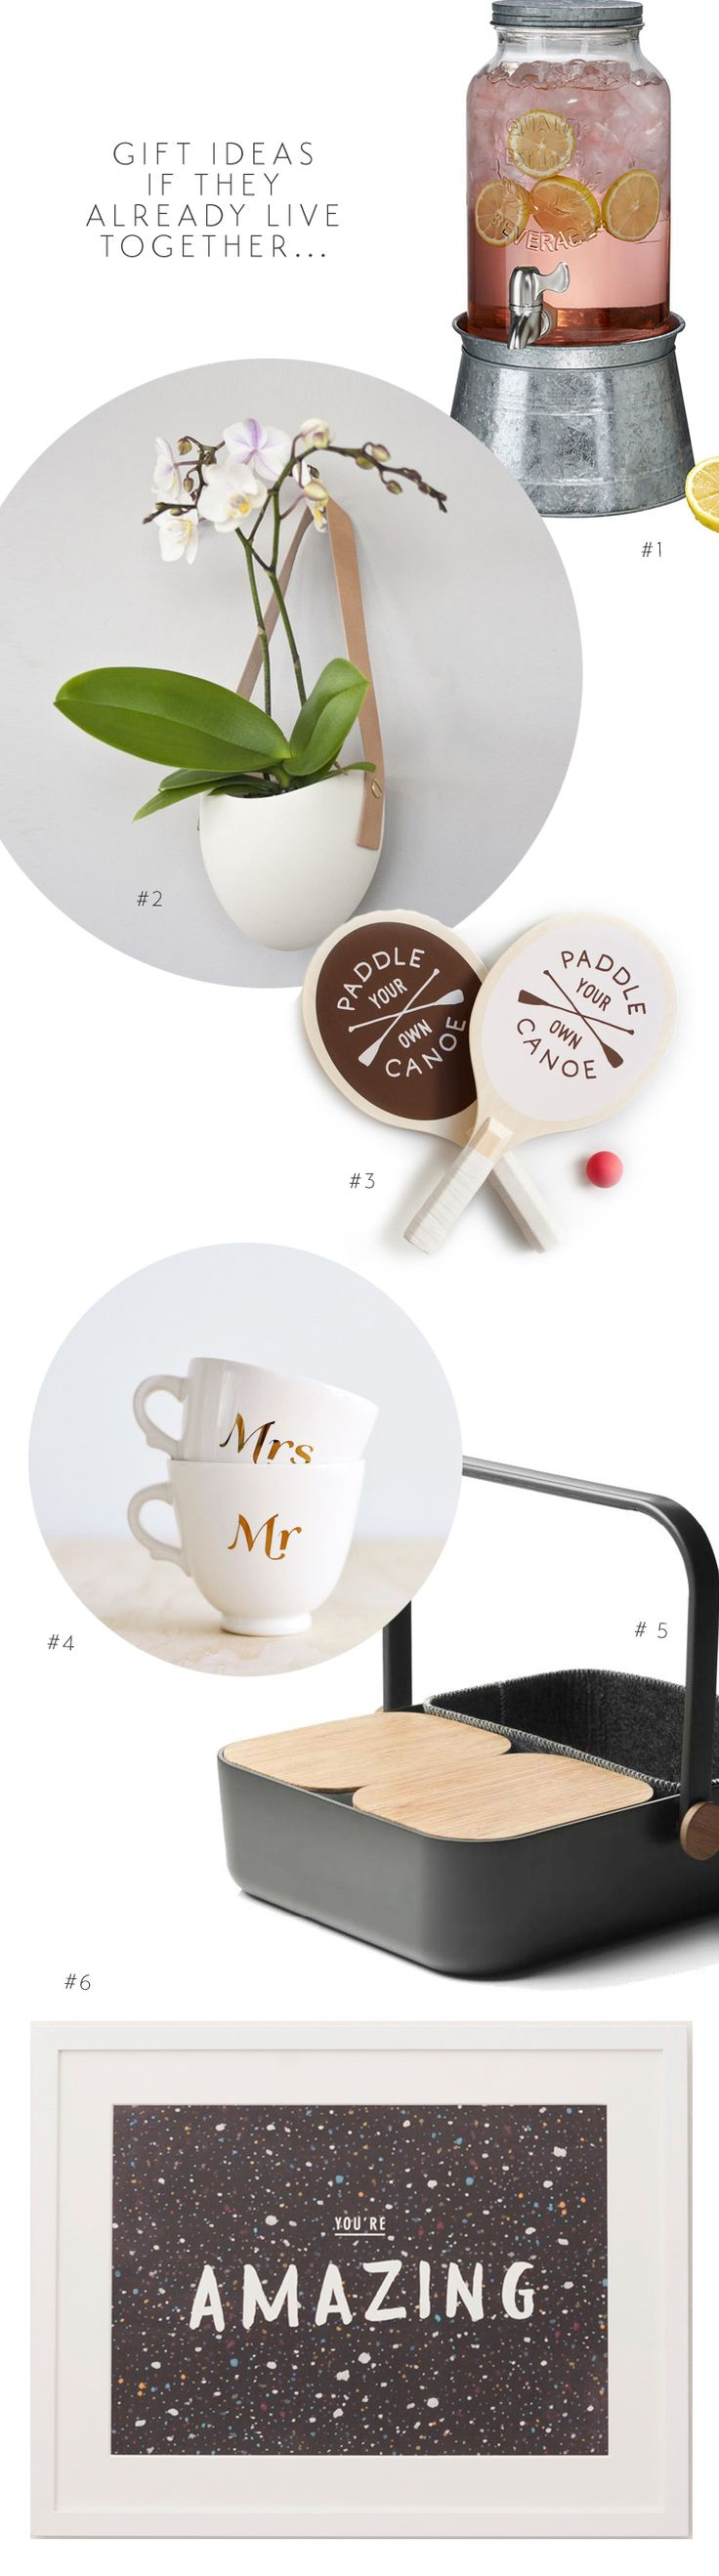 Wedding gifts for a couple that already lives together - The Ever After Story